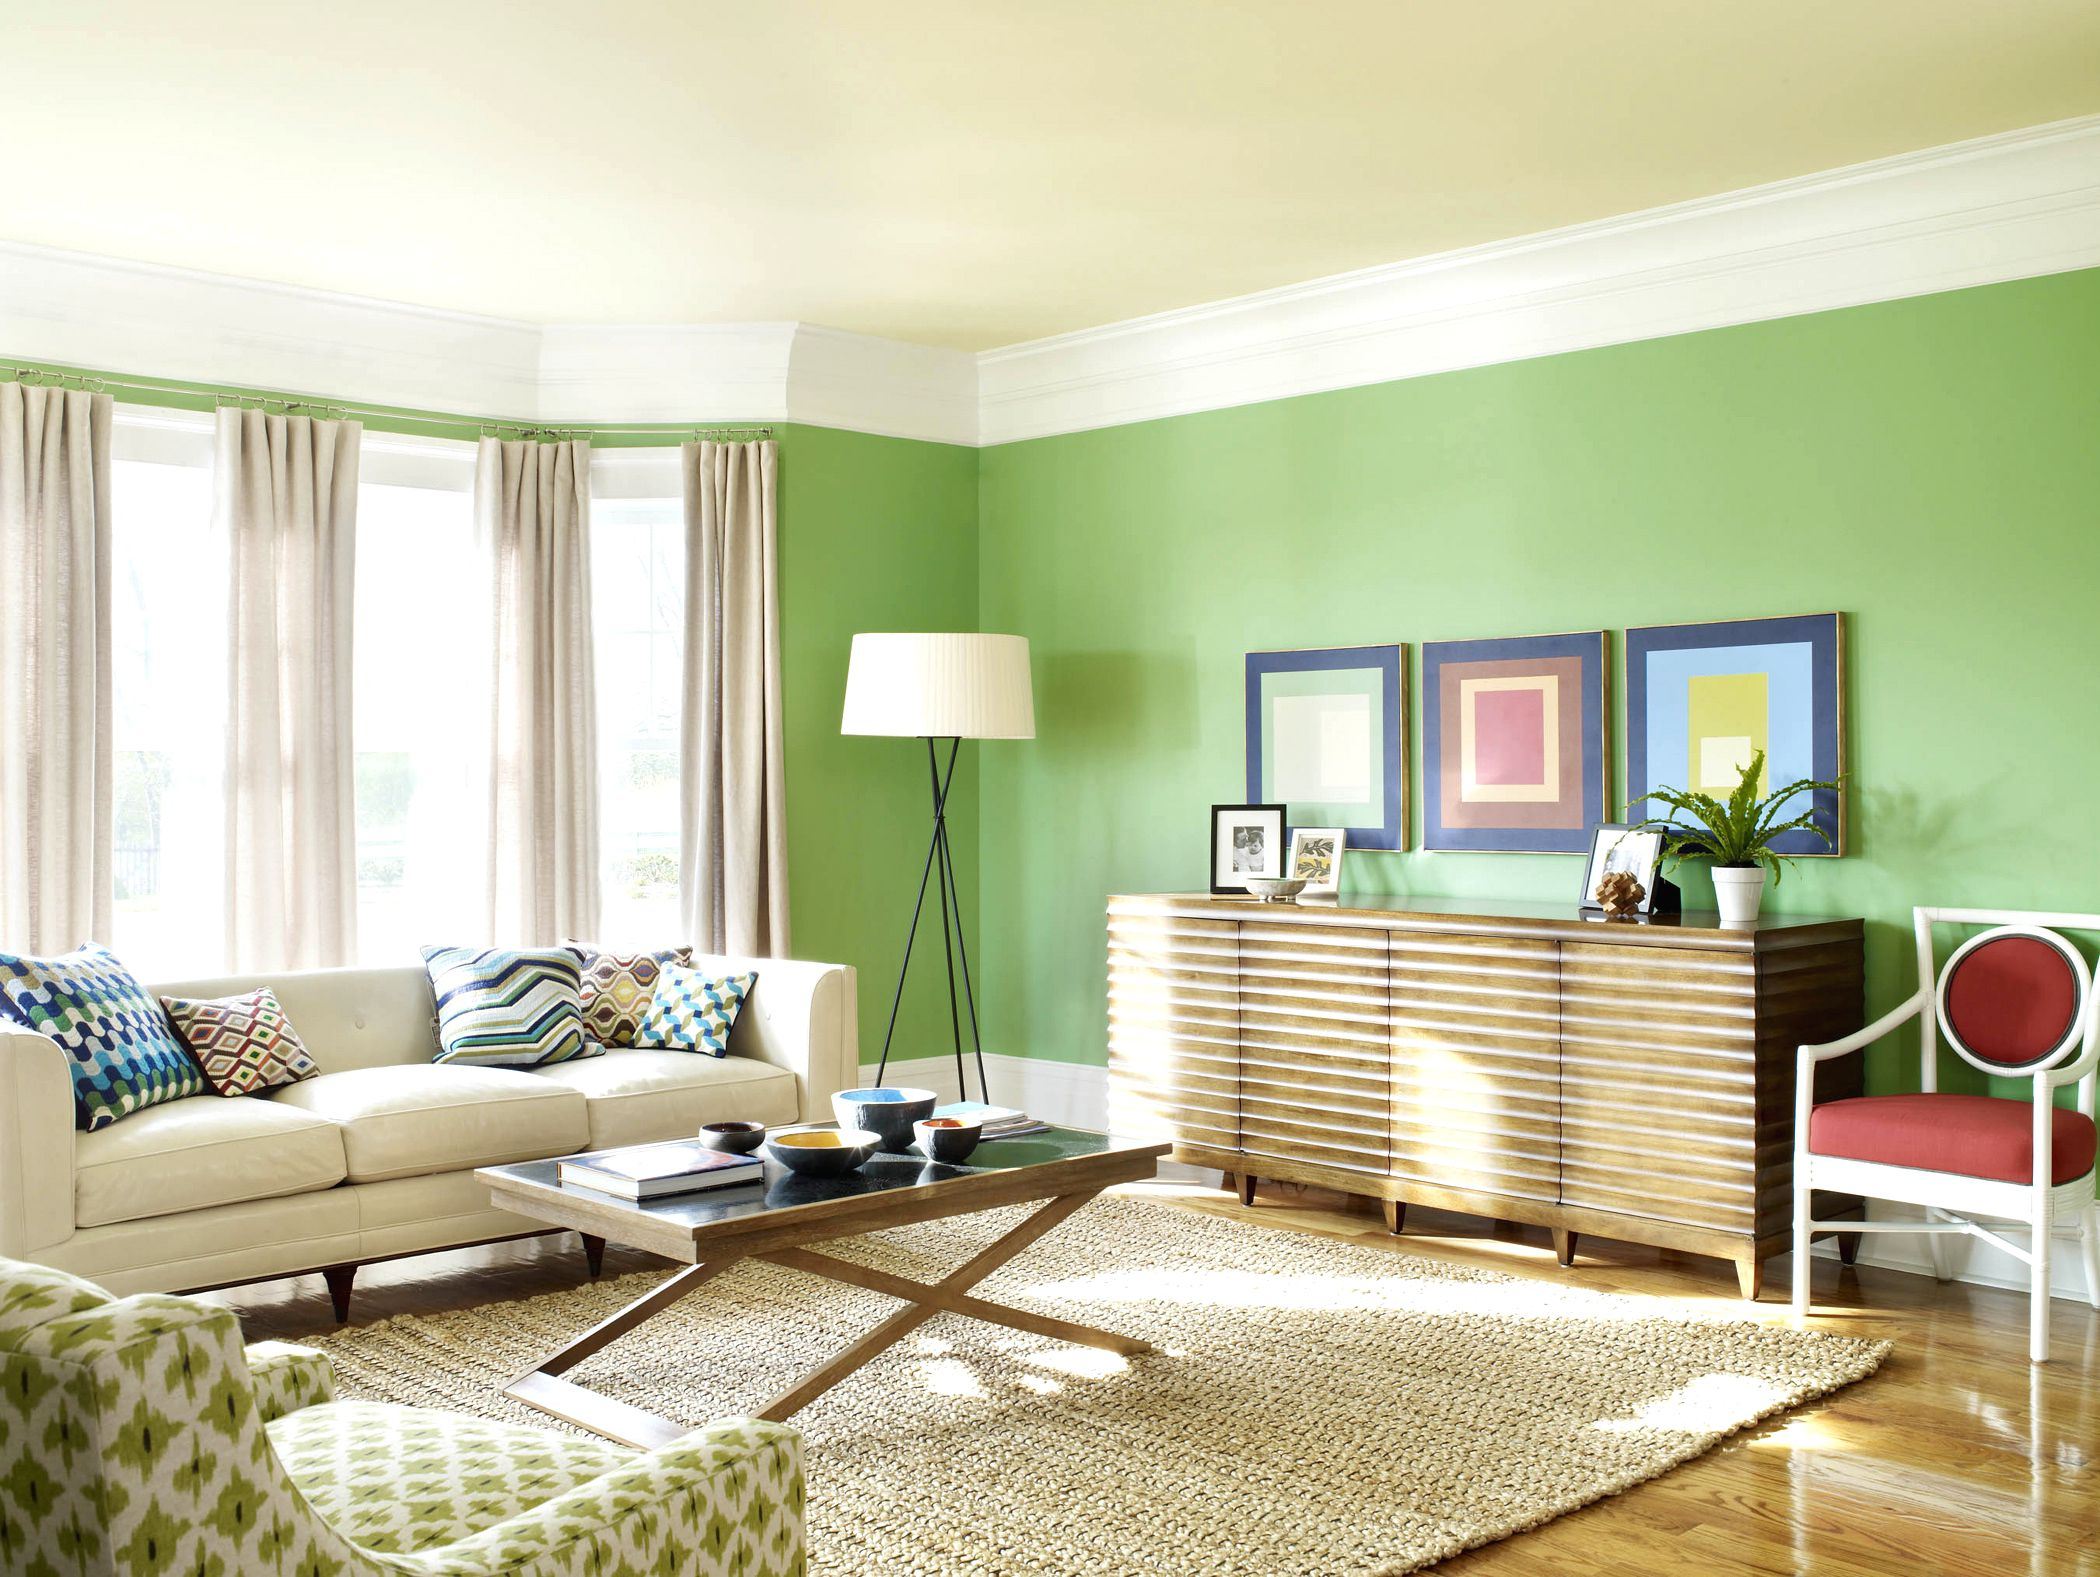 The Best Summer Paint Colors for Your Living Room4 summer paint colors for your living room The Best Summer Paint Colors for Your Living Room The Best Summer Paint Colors for Your Living Room4